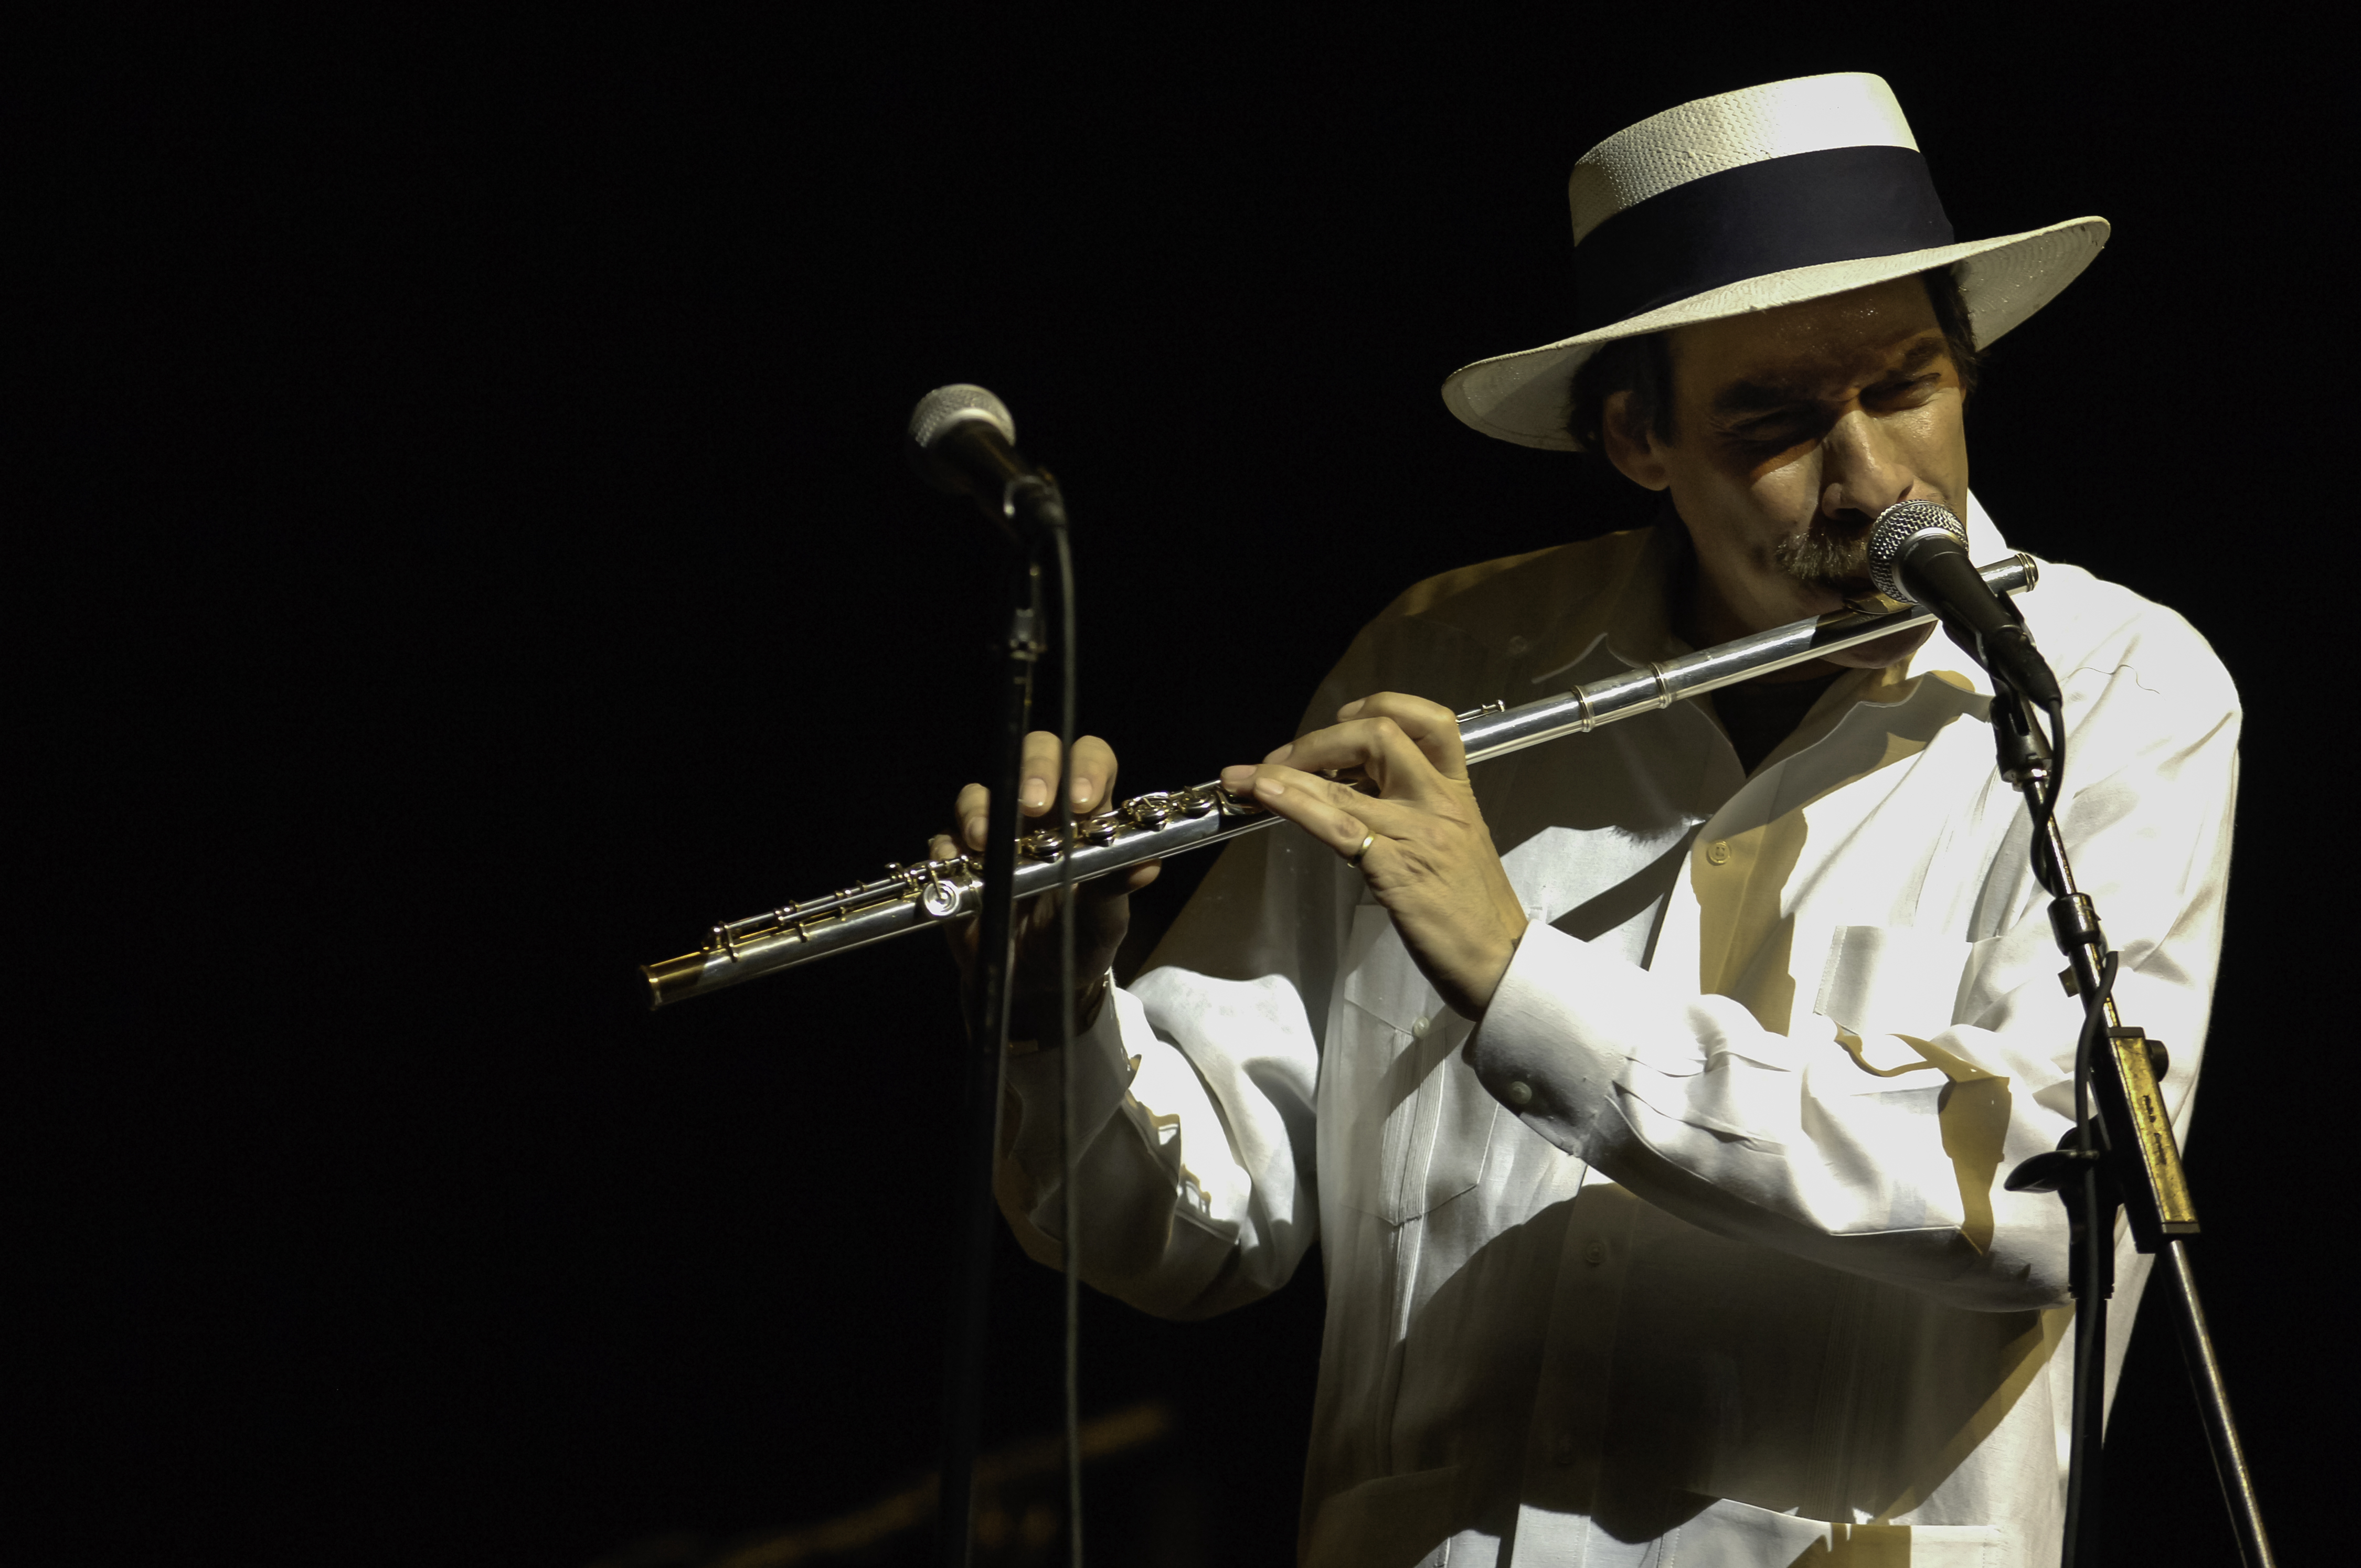 American Latin Jazz musician Dave Valentin performs on flute  at Lehman Center for the Performing Arts , Bronx, New York, New York, May 6, 2005.